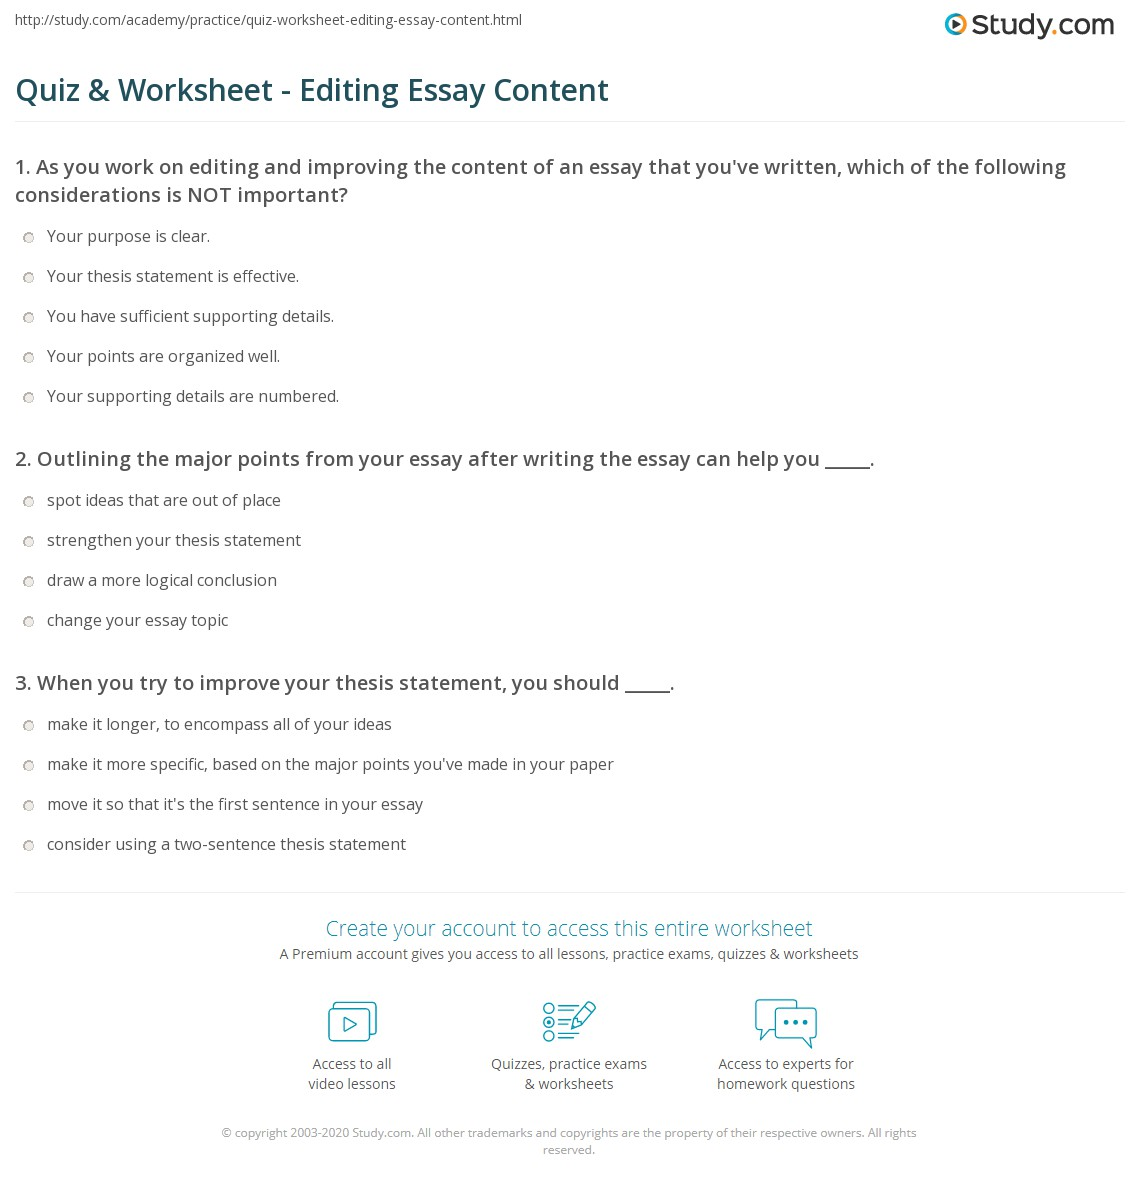 essay edit services mfawriting226 web fc2 com essay edit services